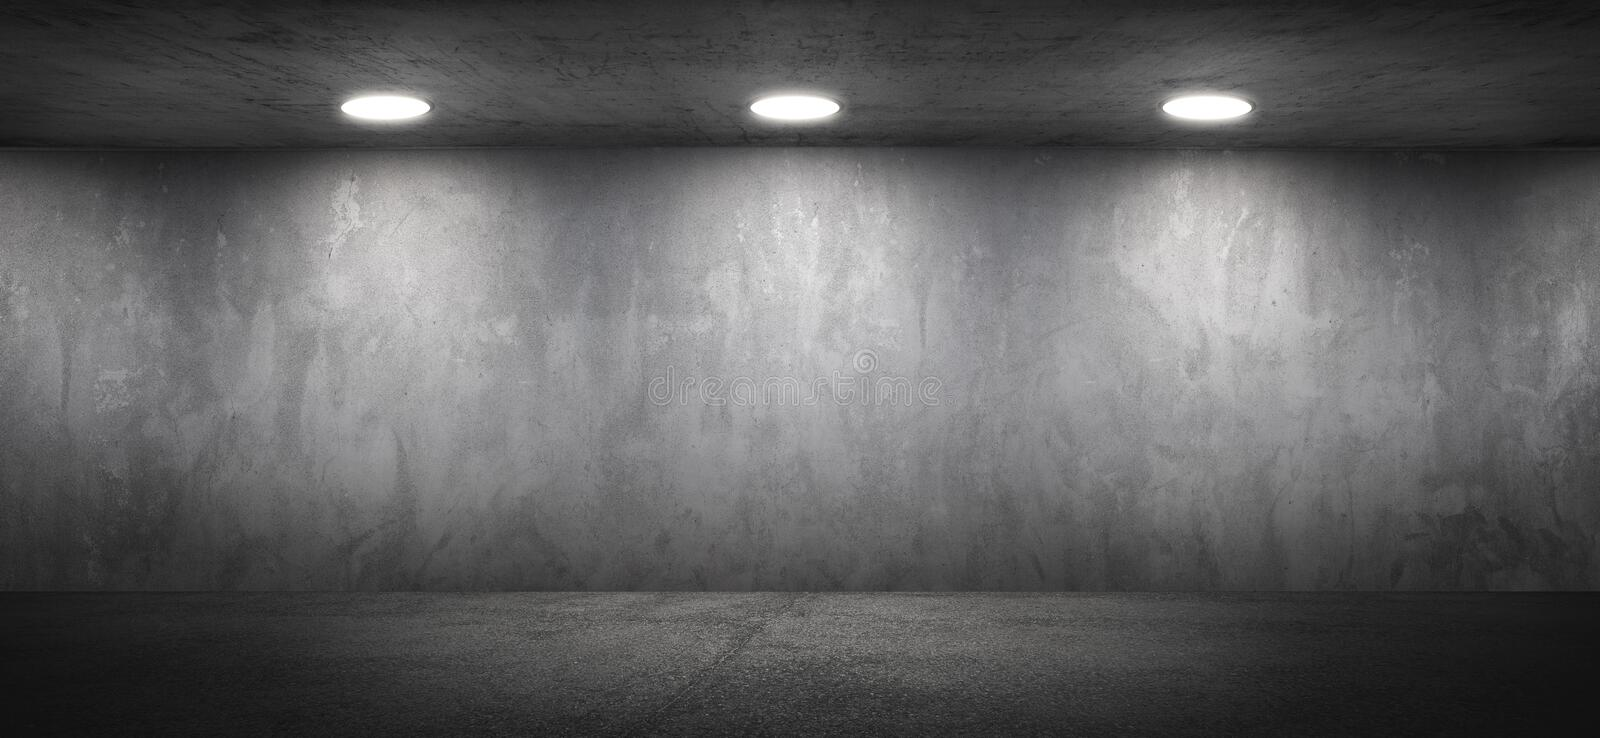 Blank Concrete Office Room Textured Wall Background royalty free stock photography